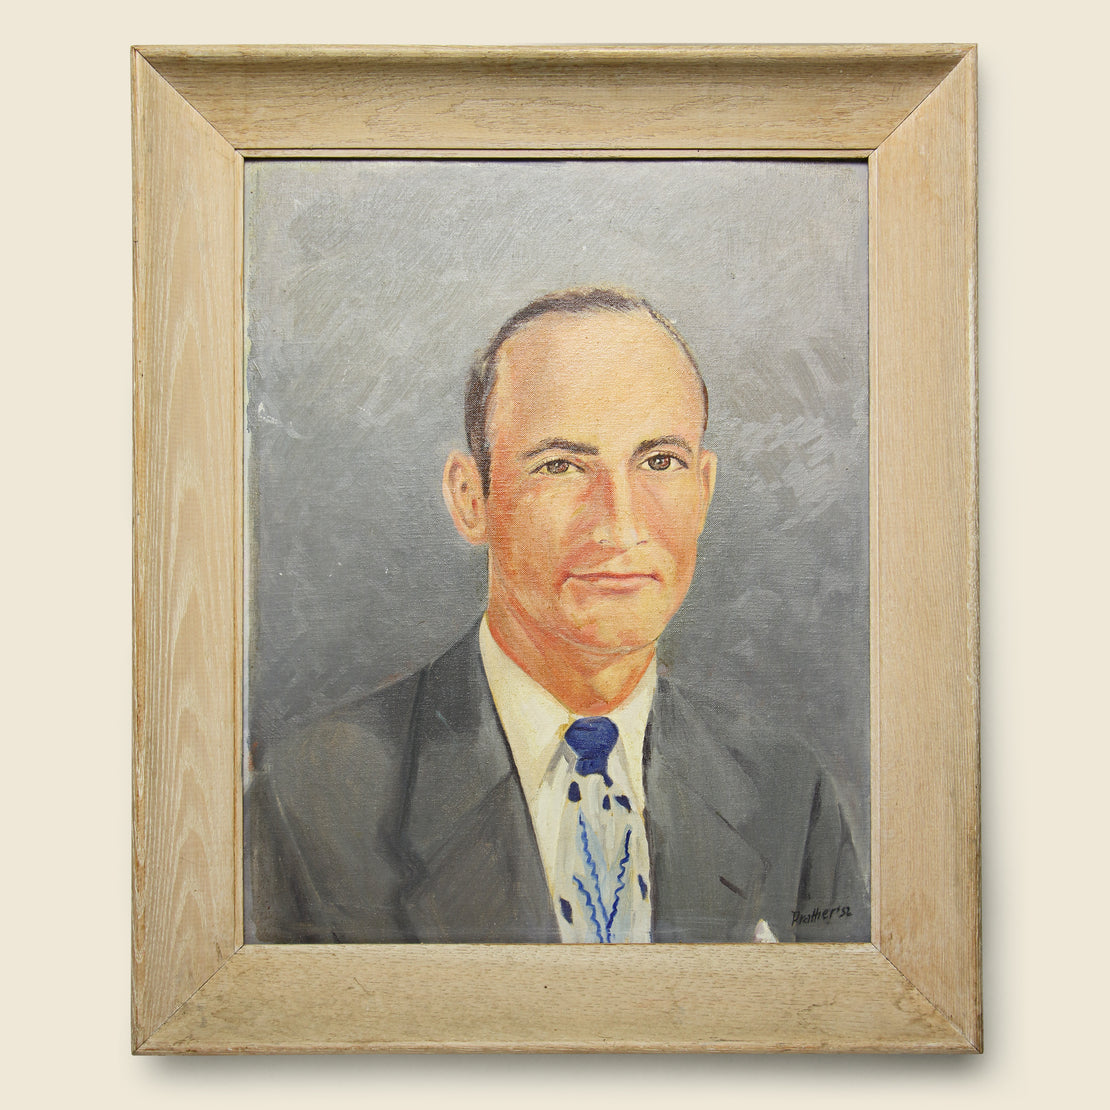 Vintage Mid Century Portrait - Suited Man